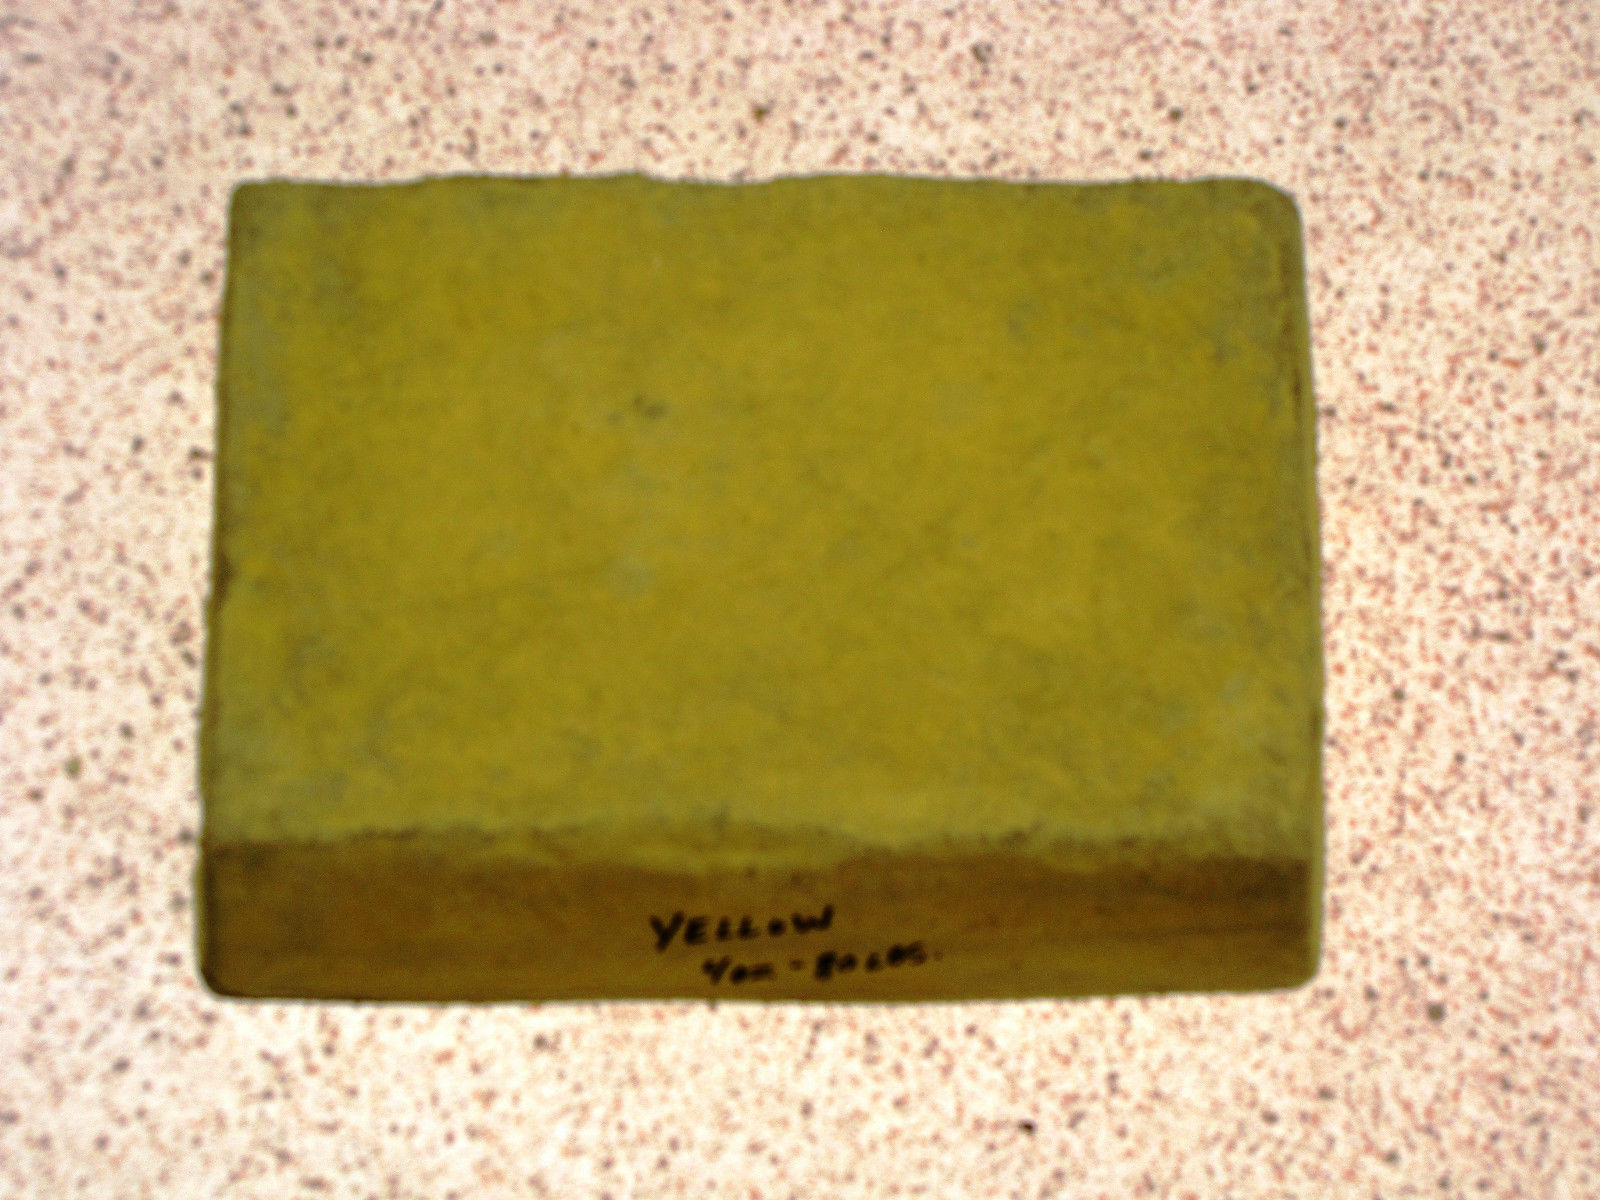 115-25 Yellow Concrete Cement Powder Color 25 Lbs. Makes Stone Pavers Tile Brick